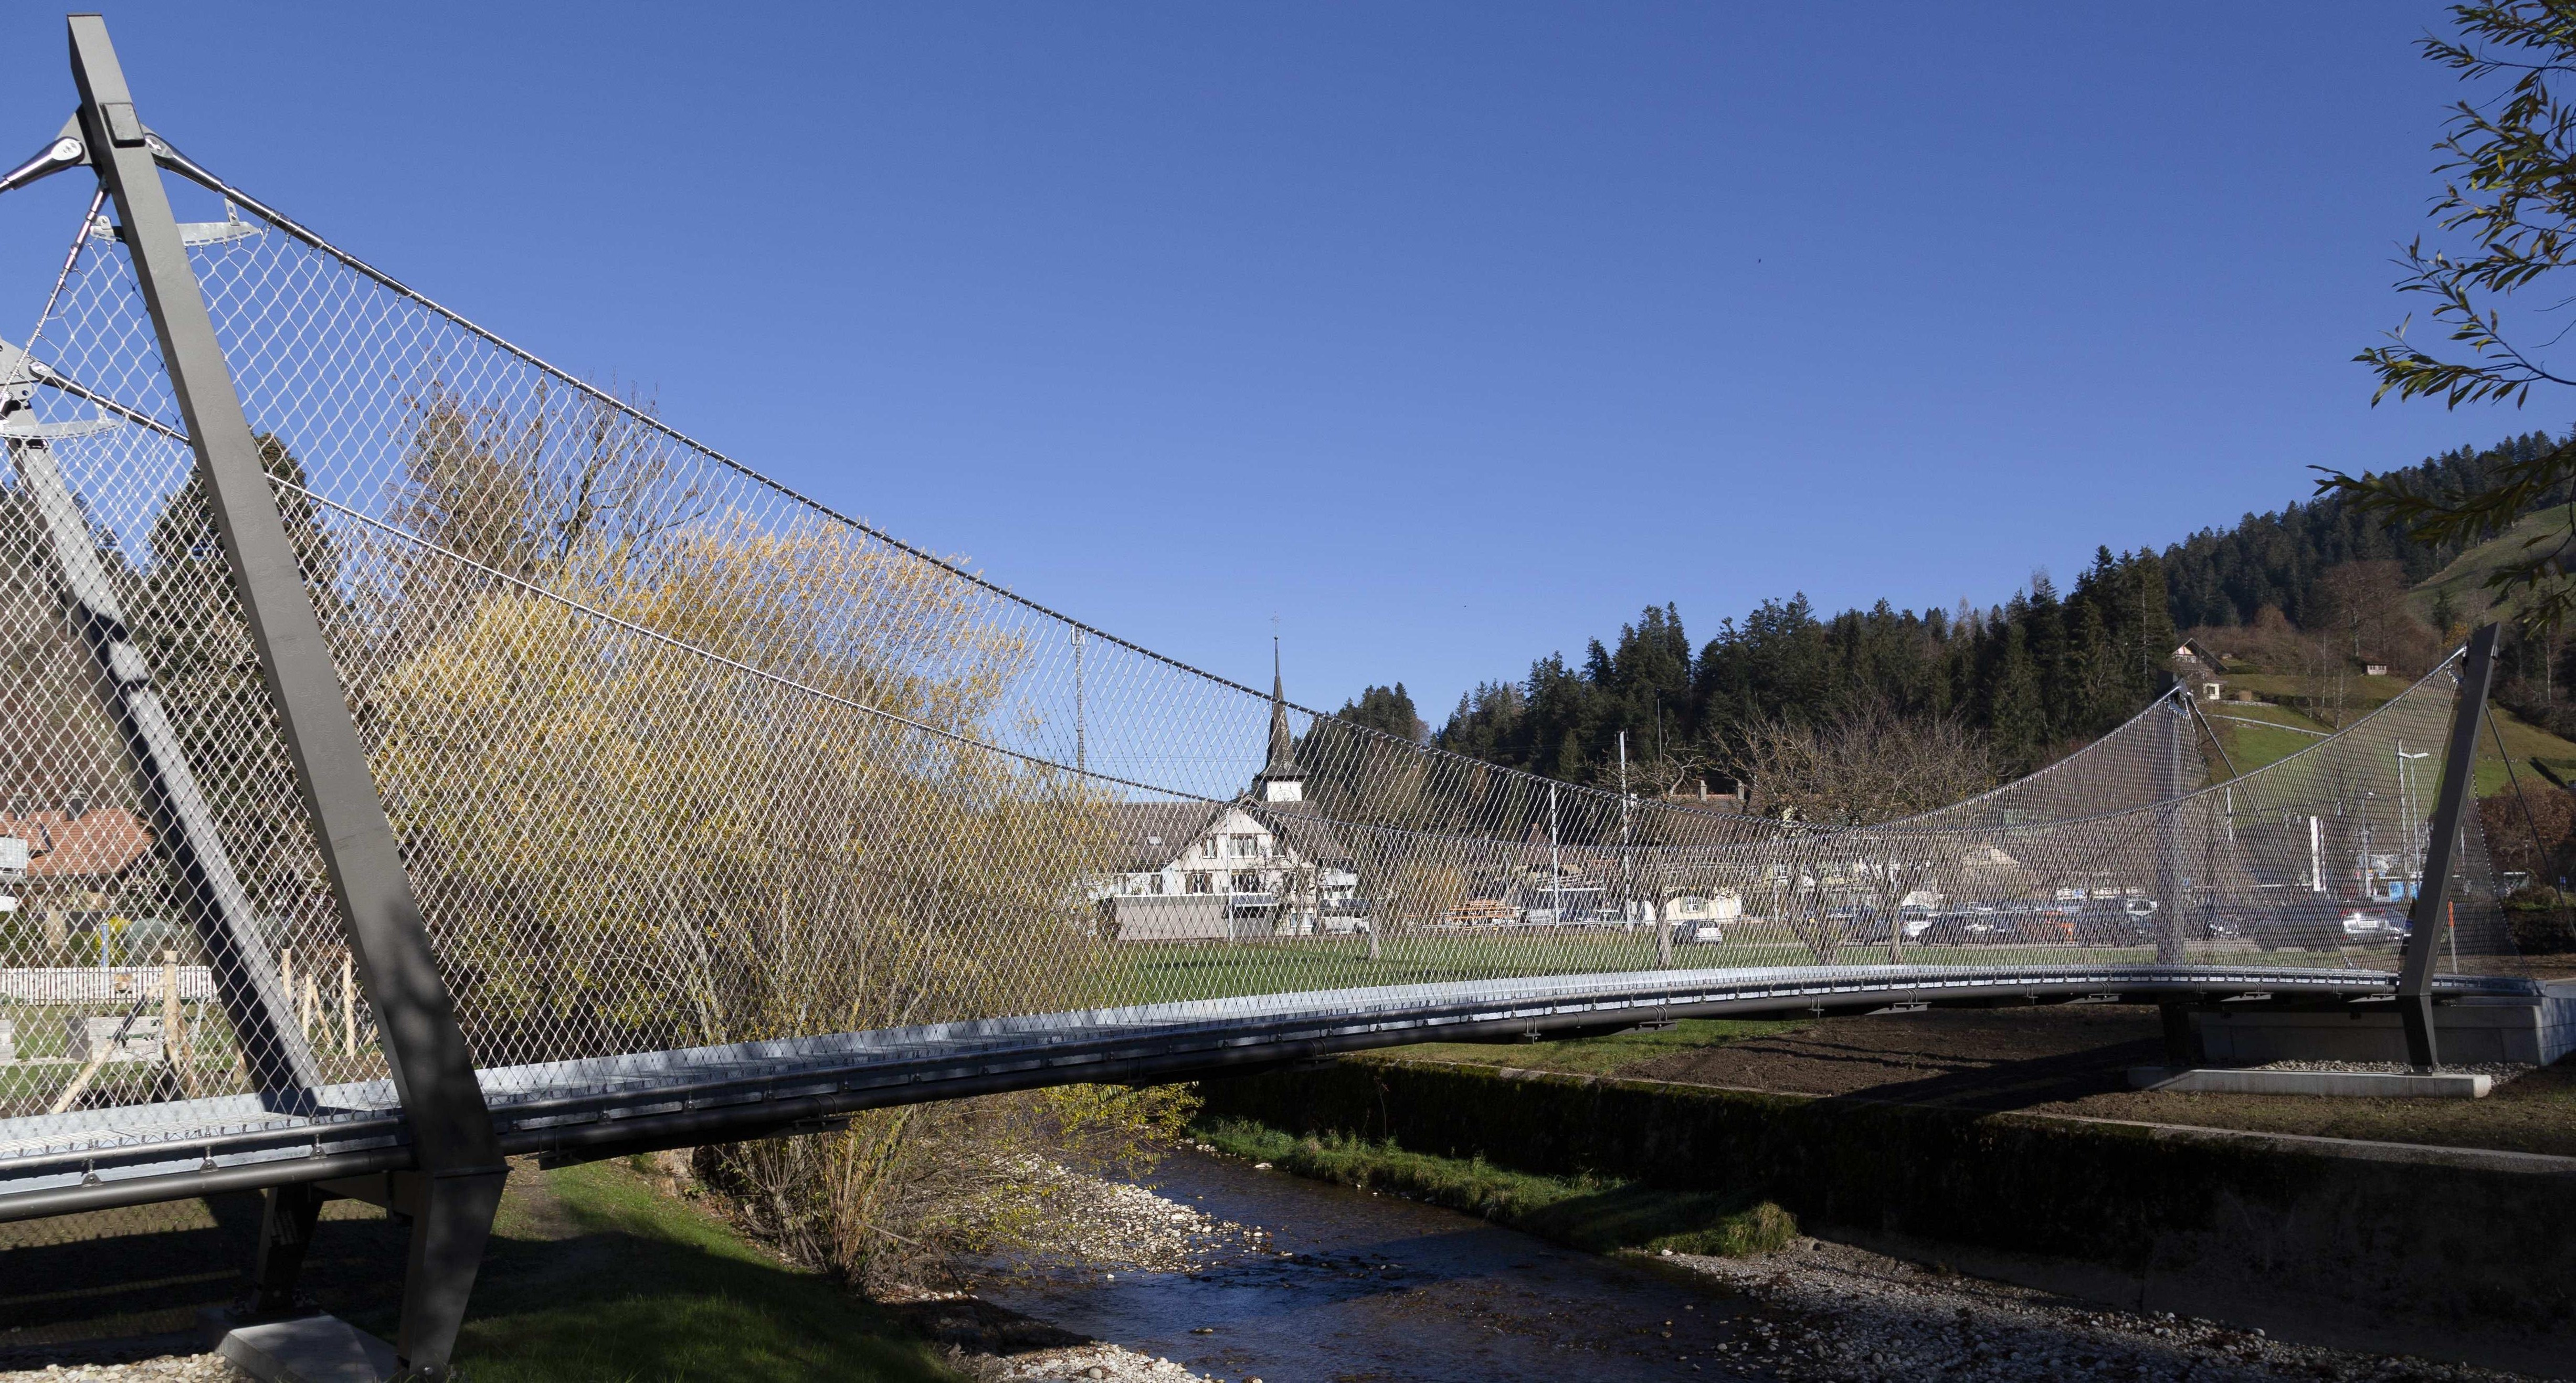 The Webnet bridge in Trubschachen